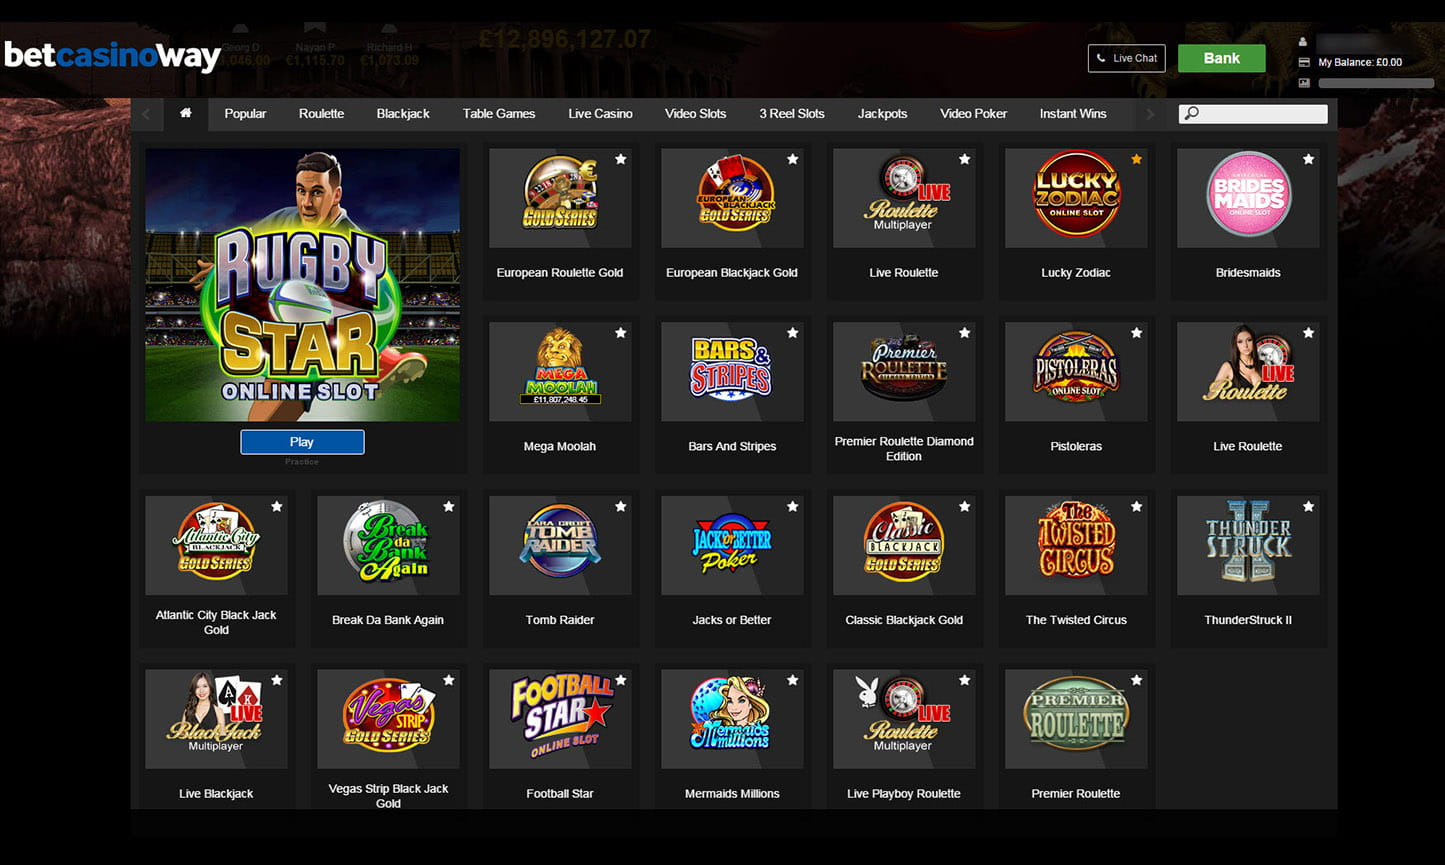 betway casino uk - the best online casino games and slots